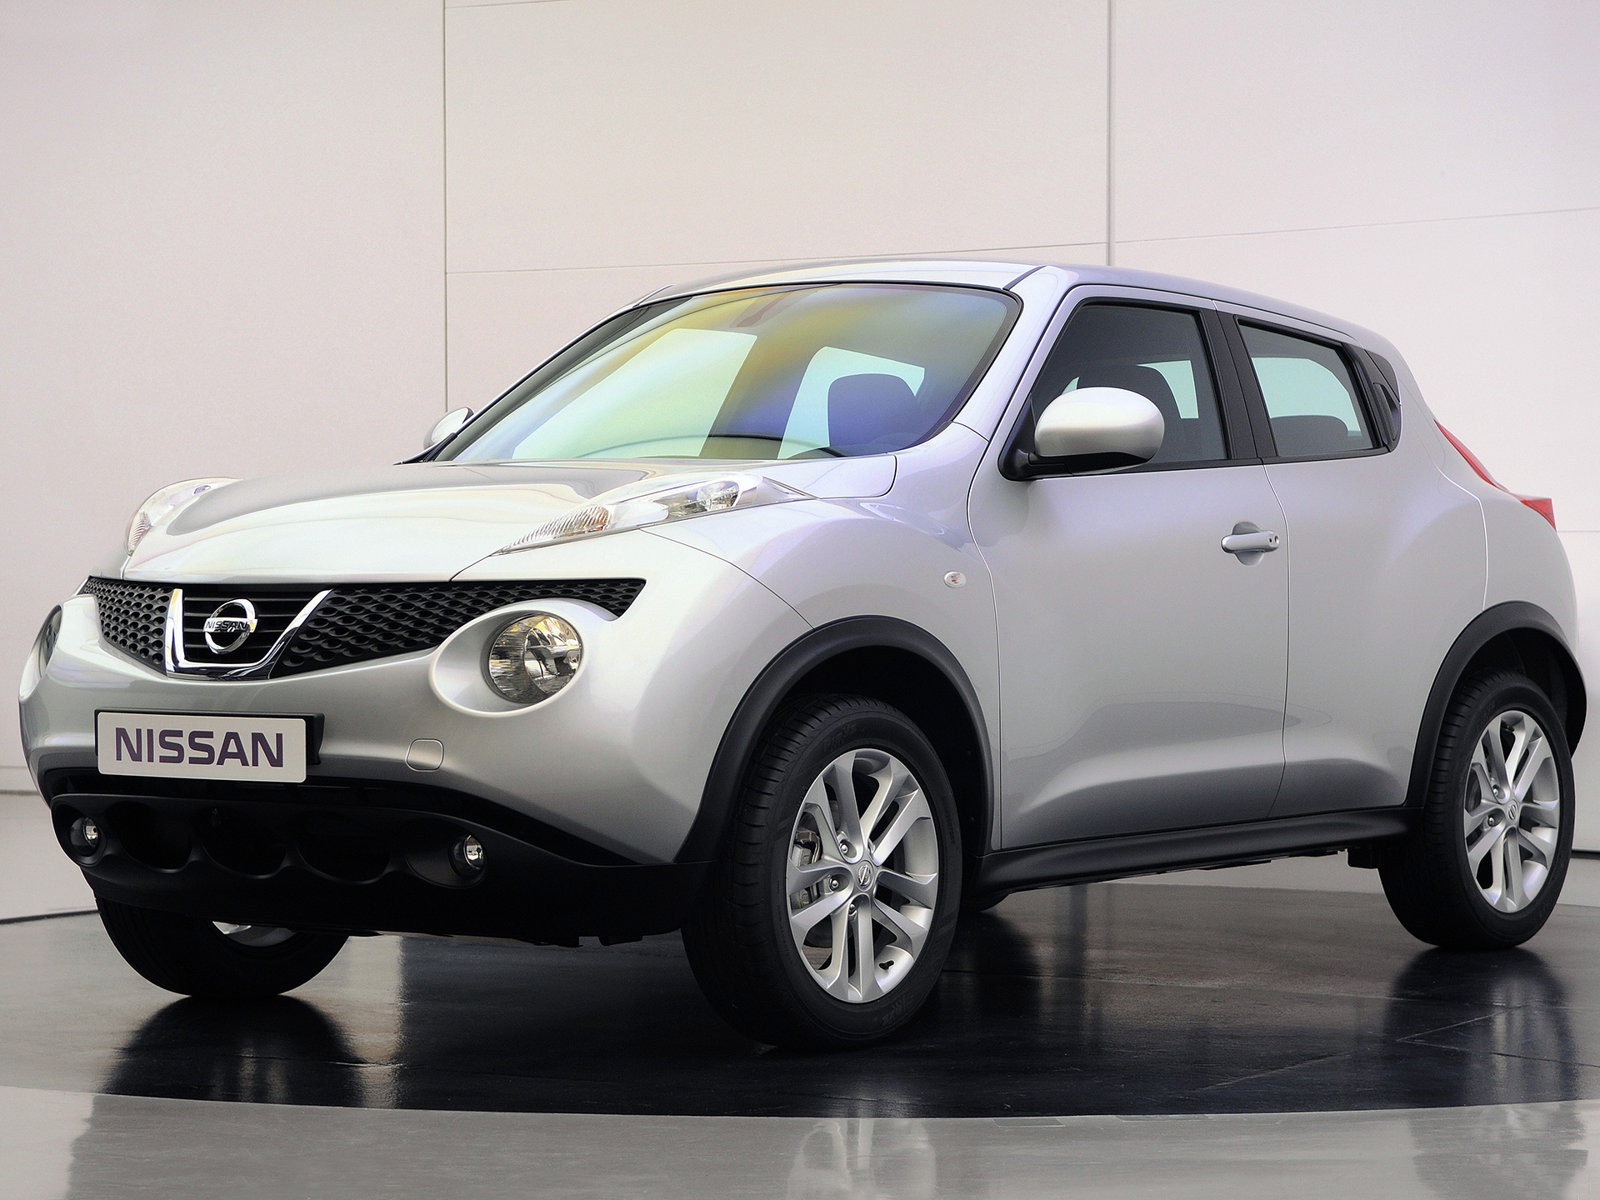 Power Vehicle Modified Car Nissan Juke 2011